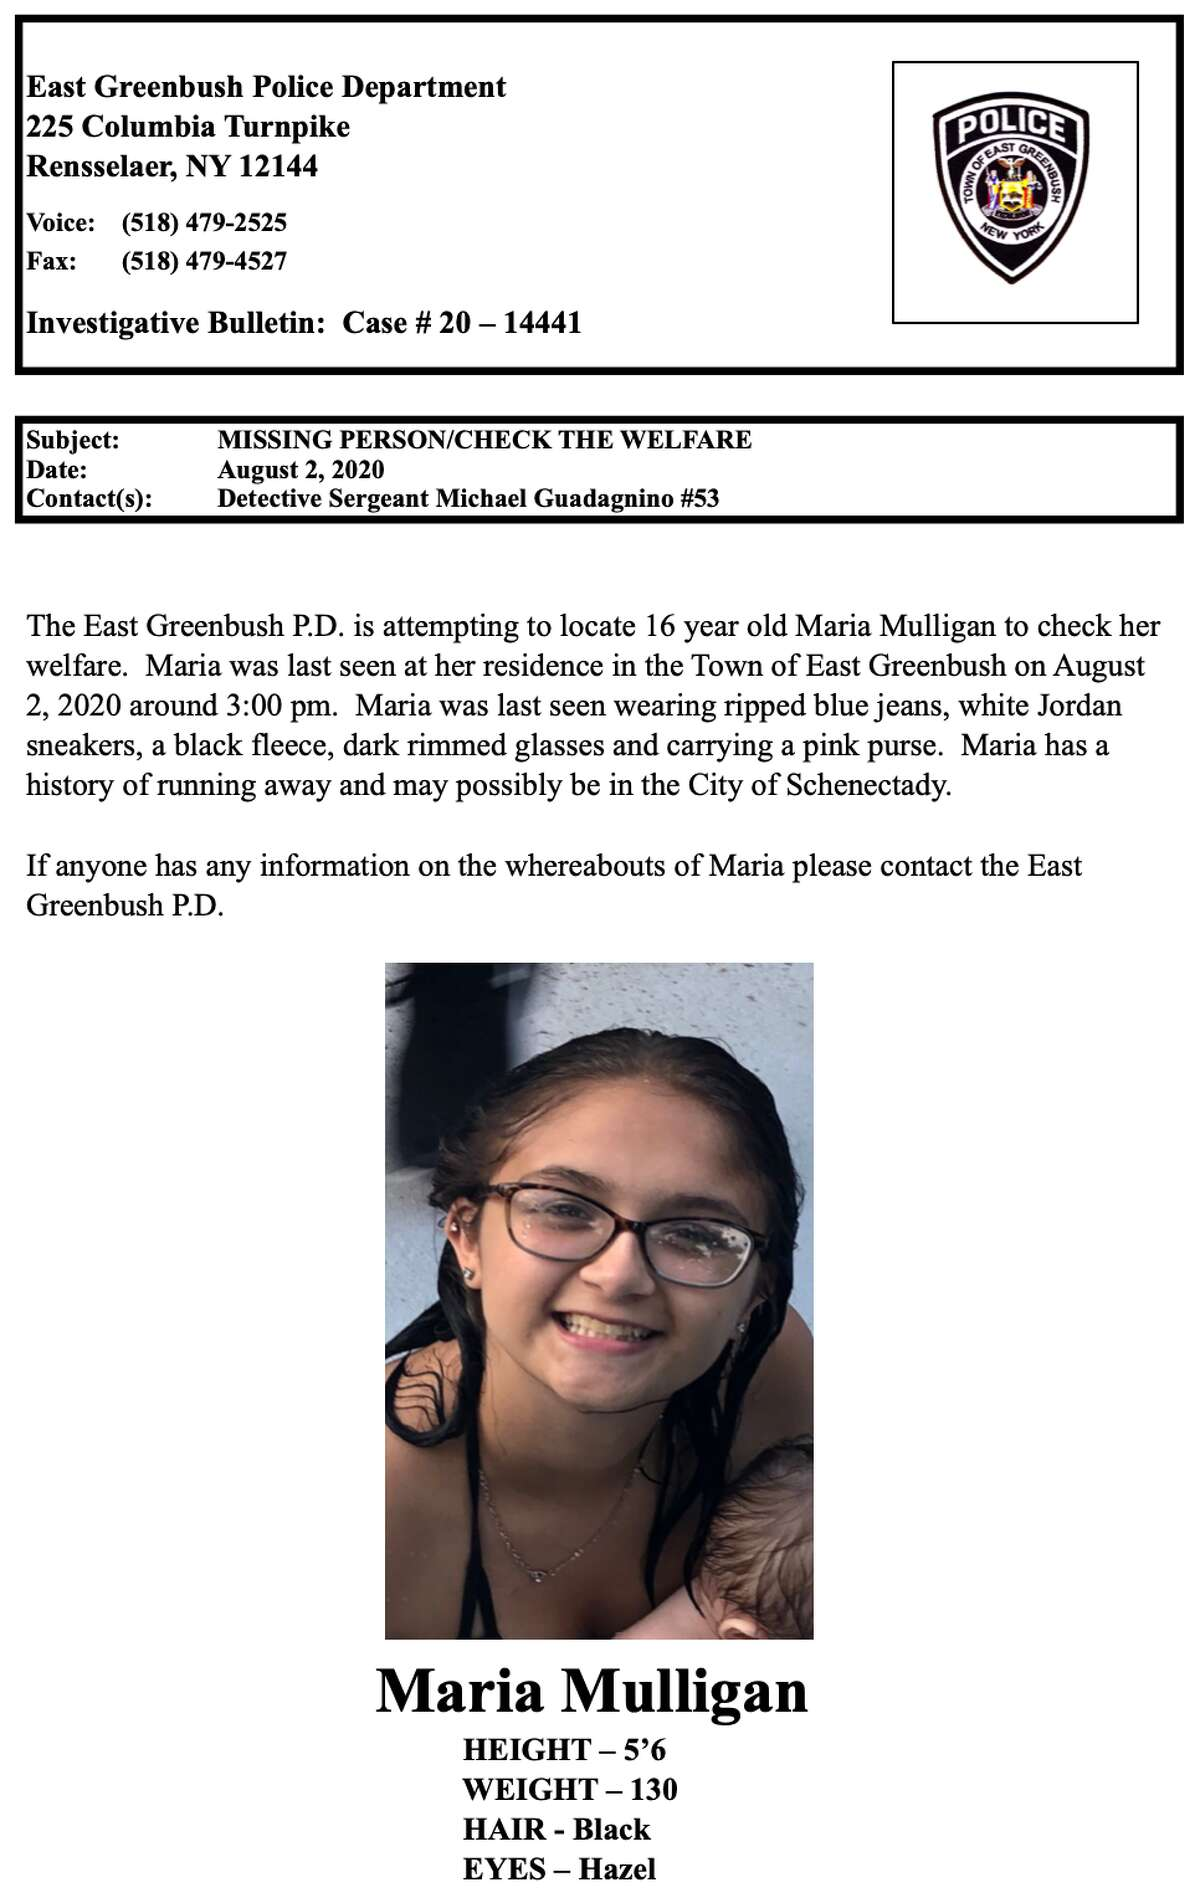 East Greenbushpolice say they hope the public can help them find Maria Mulligan, a 16-year-old who was last seen at home on Sunday.